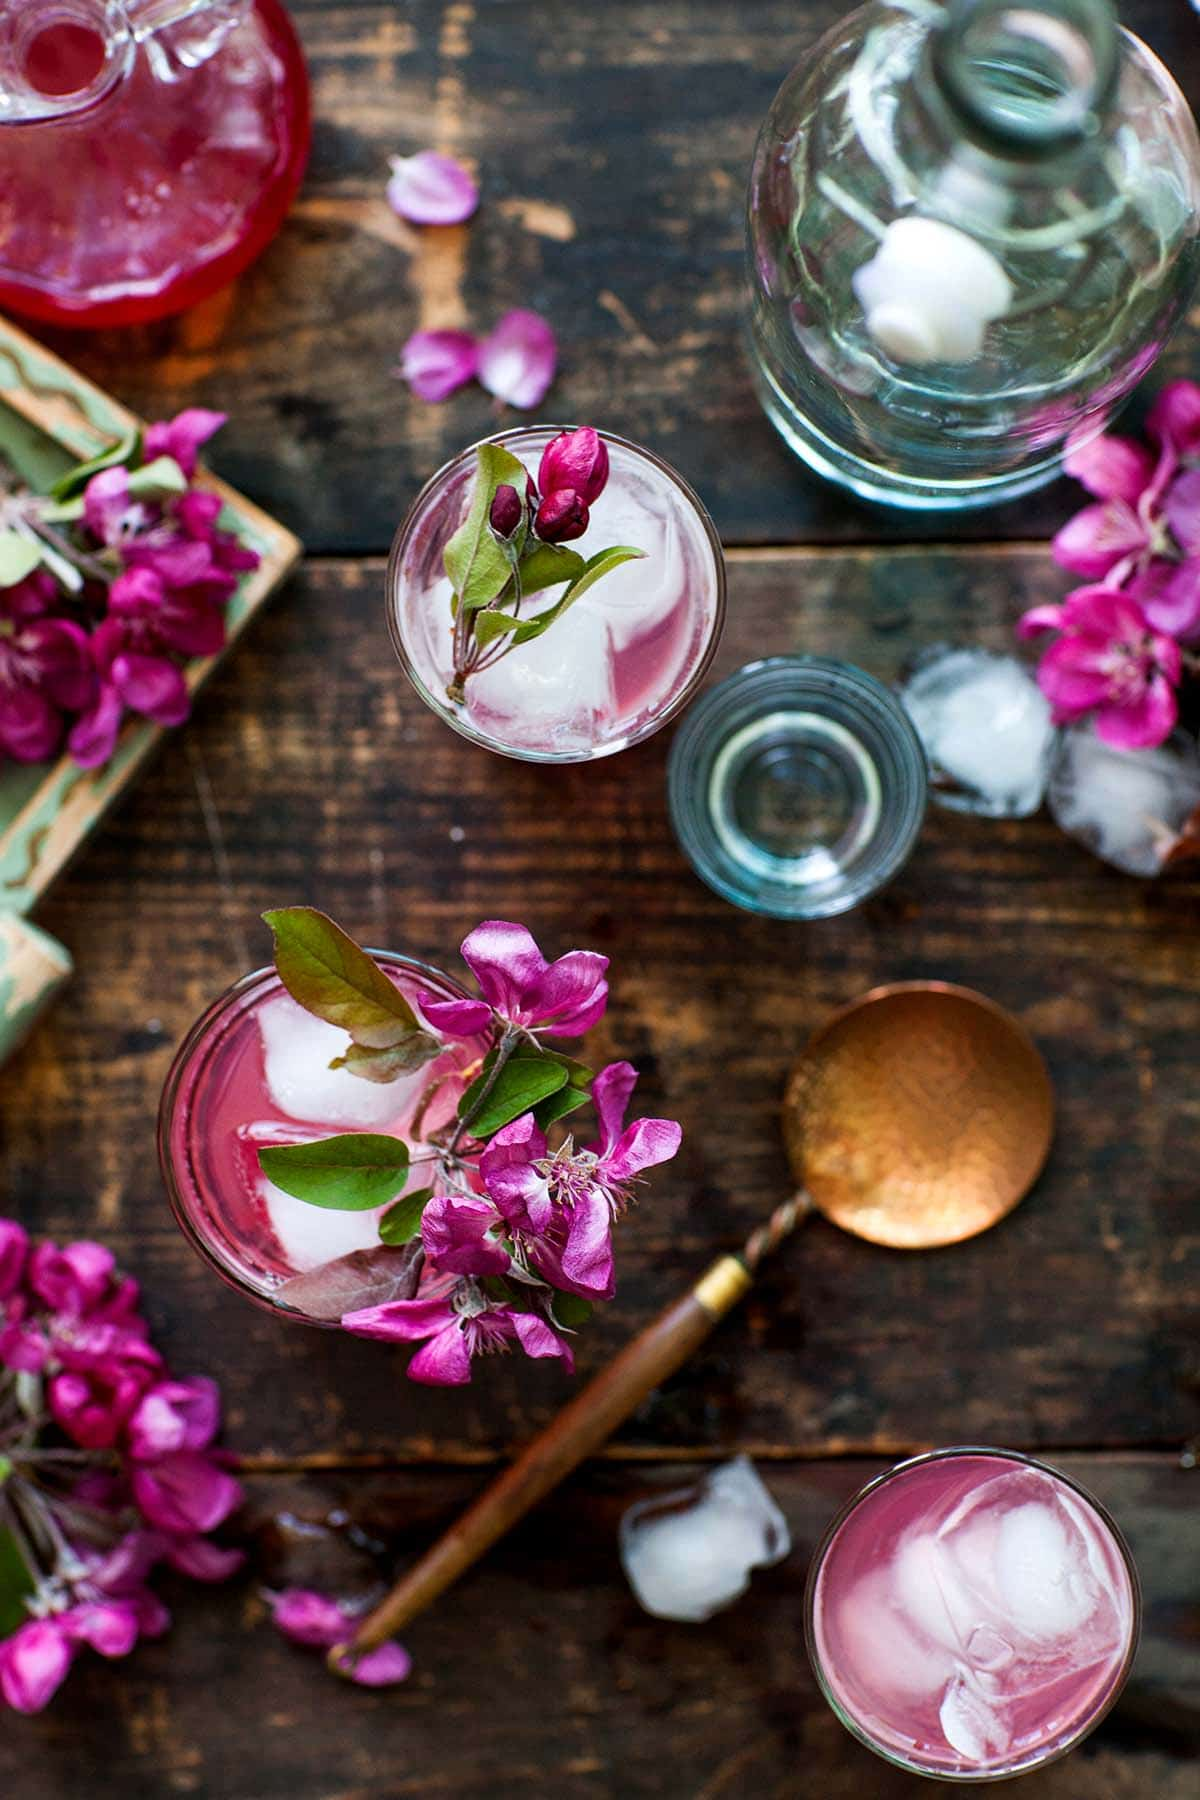 Overhead shot of cocktails with ice and barware garnished with pink flowers.